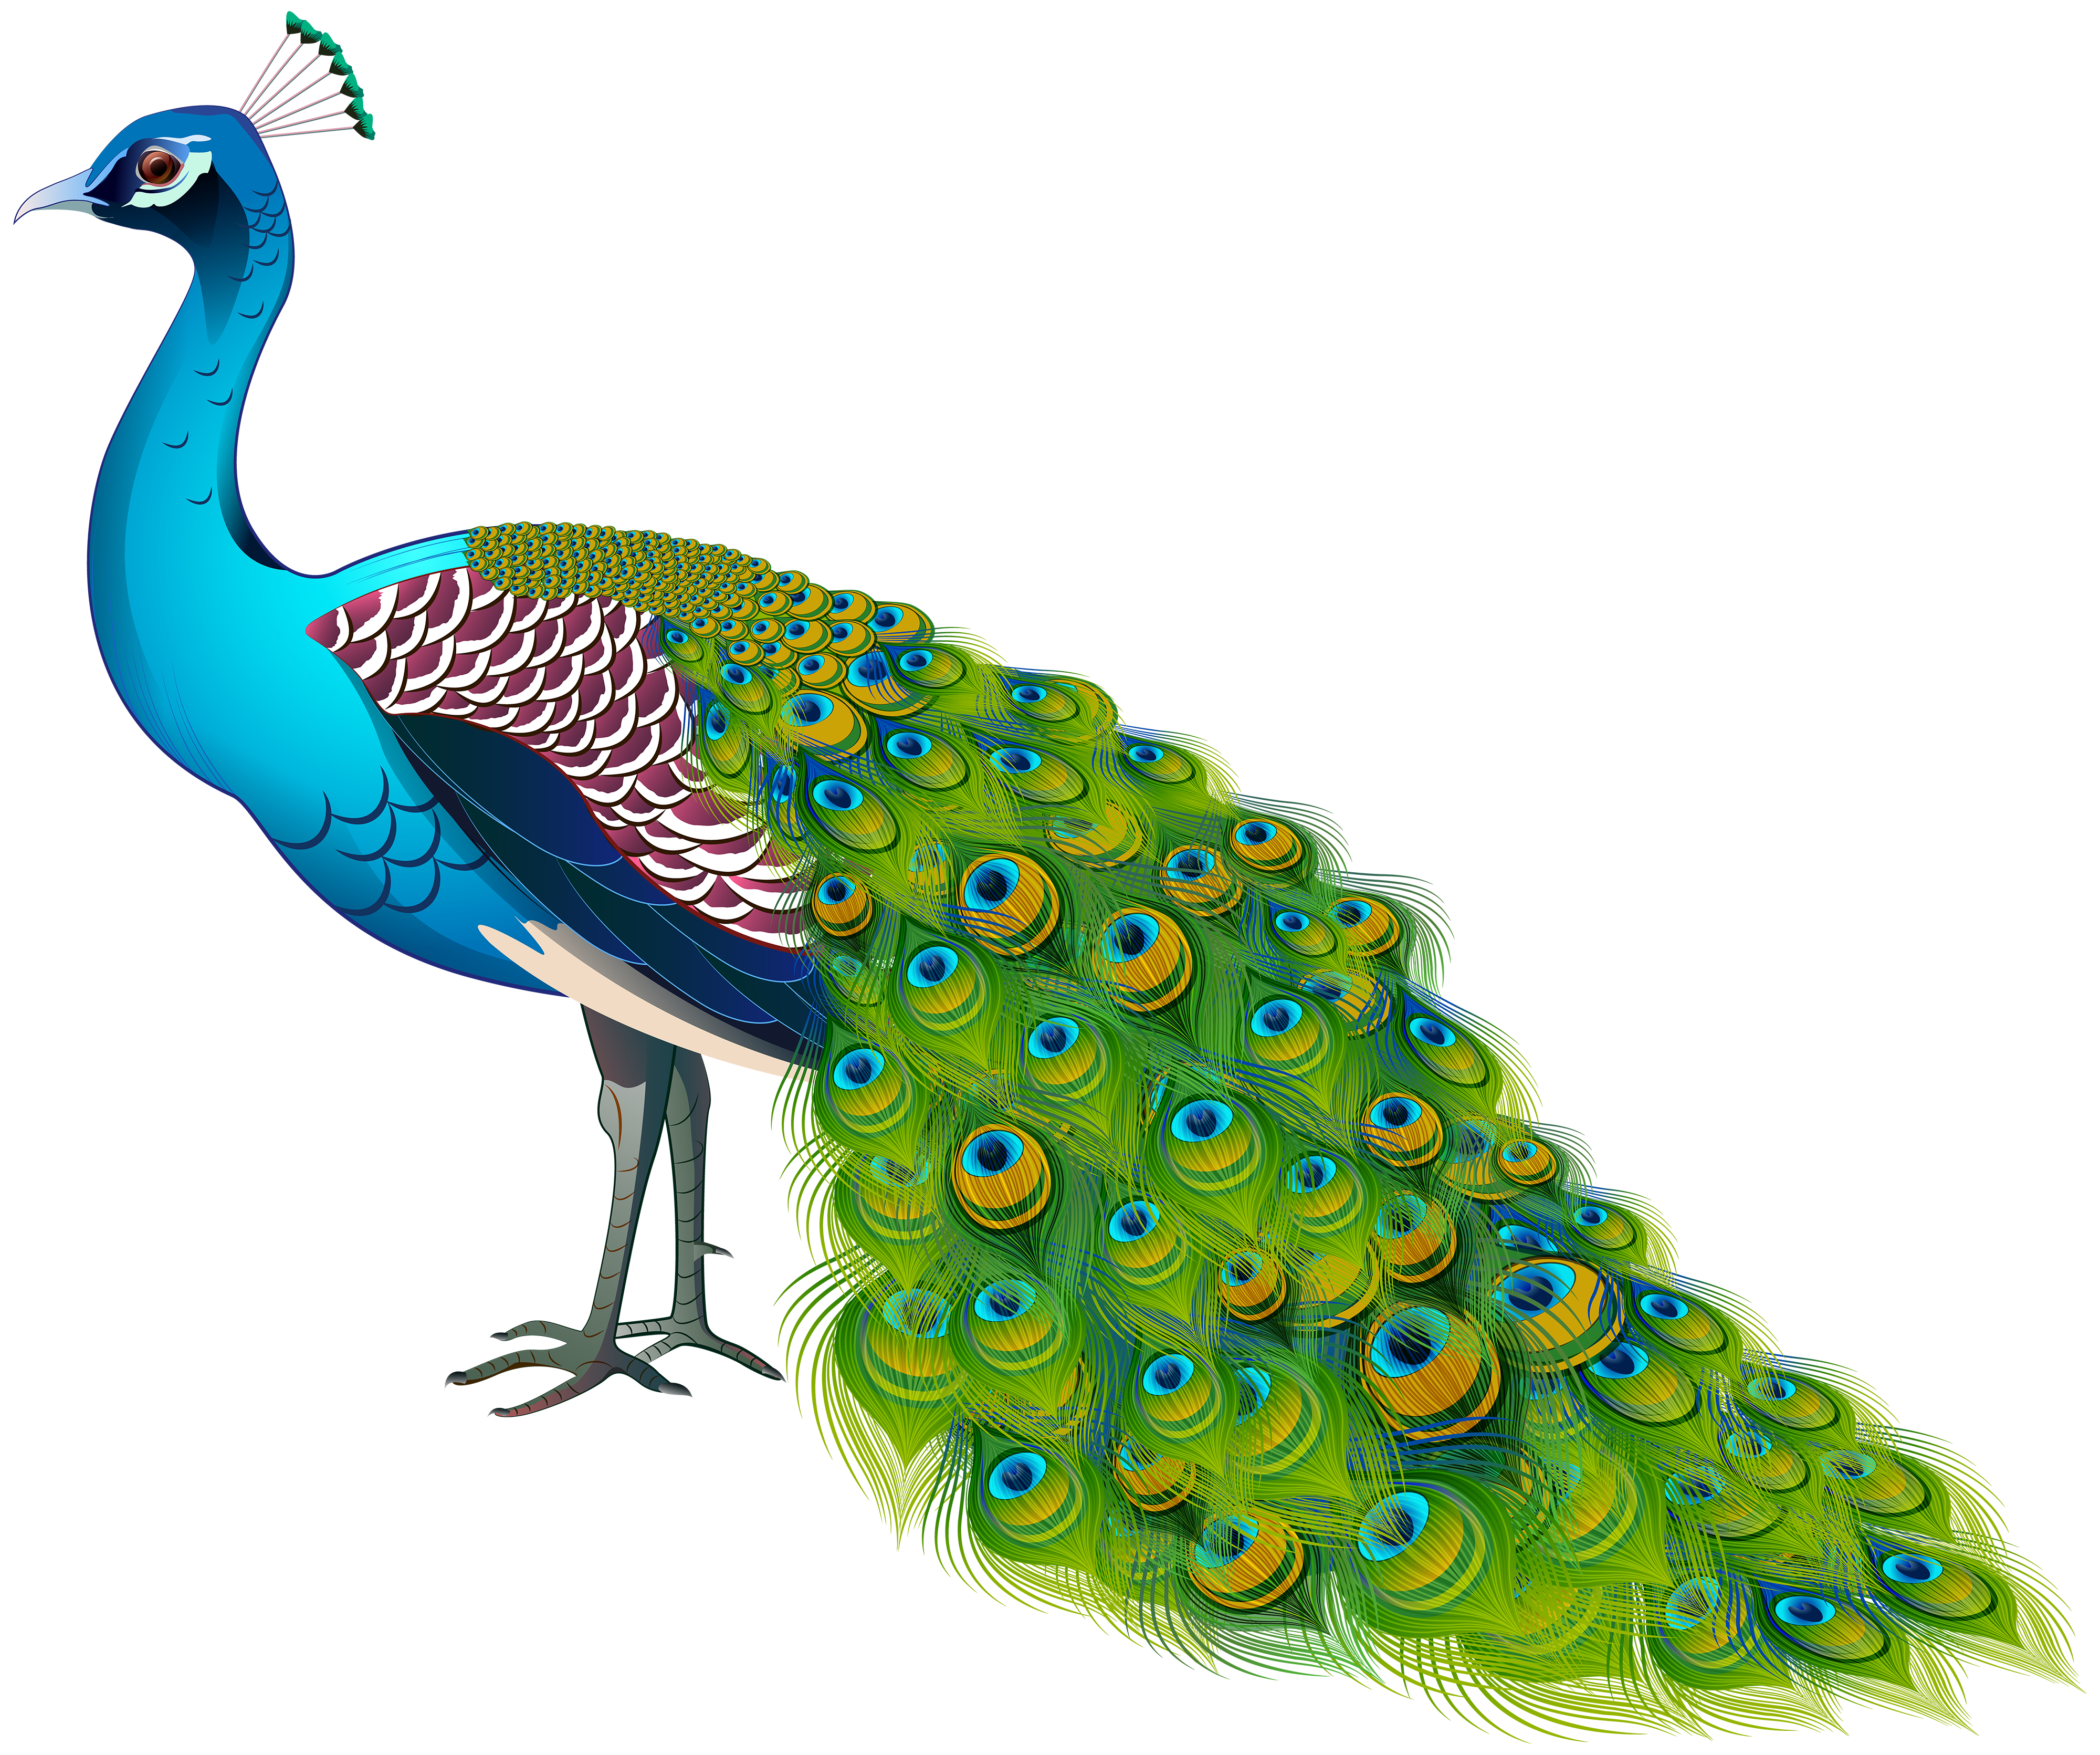 Peacock Transparent Image Gallery Yopriceville High